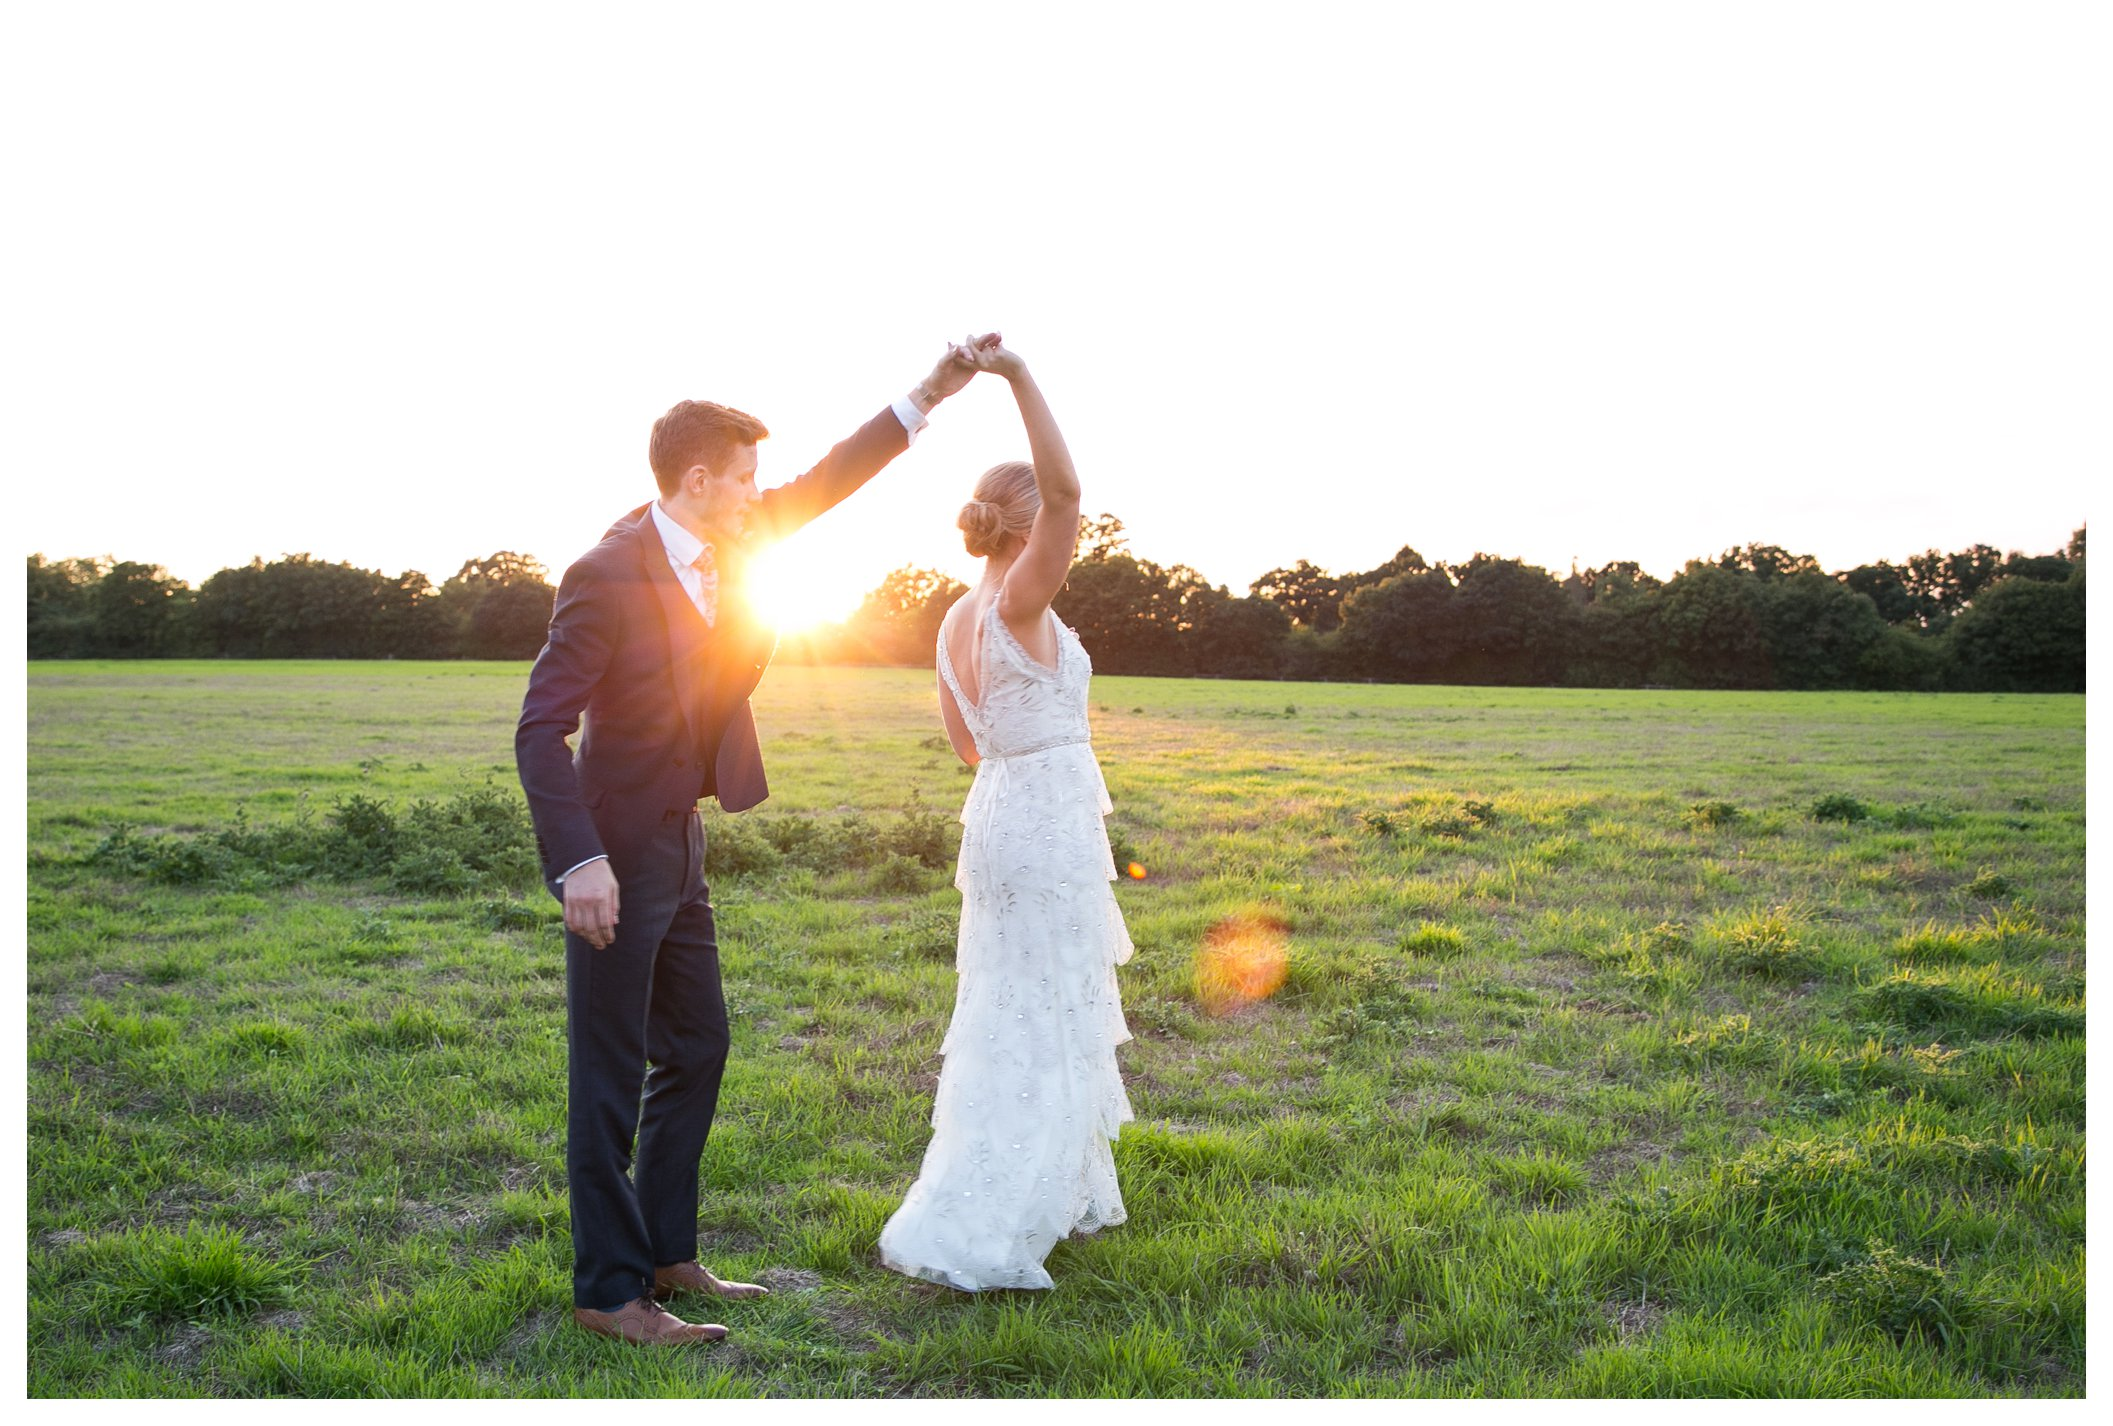 bride and groom dancing in the summer evening sun on wedding day